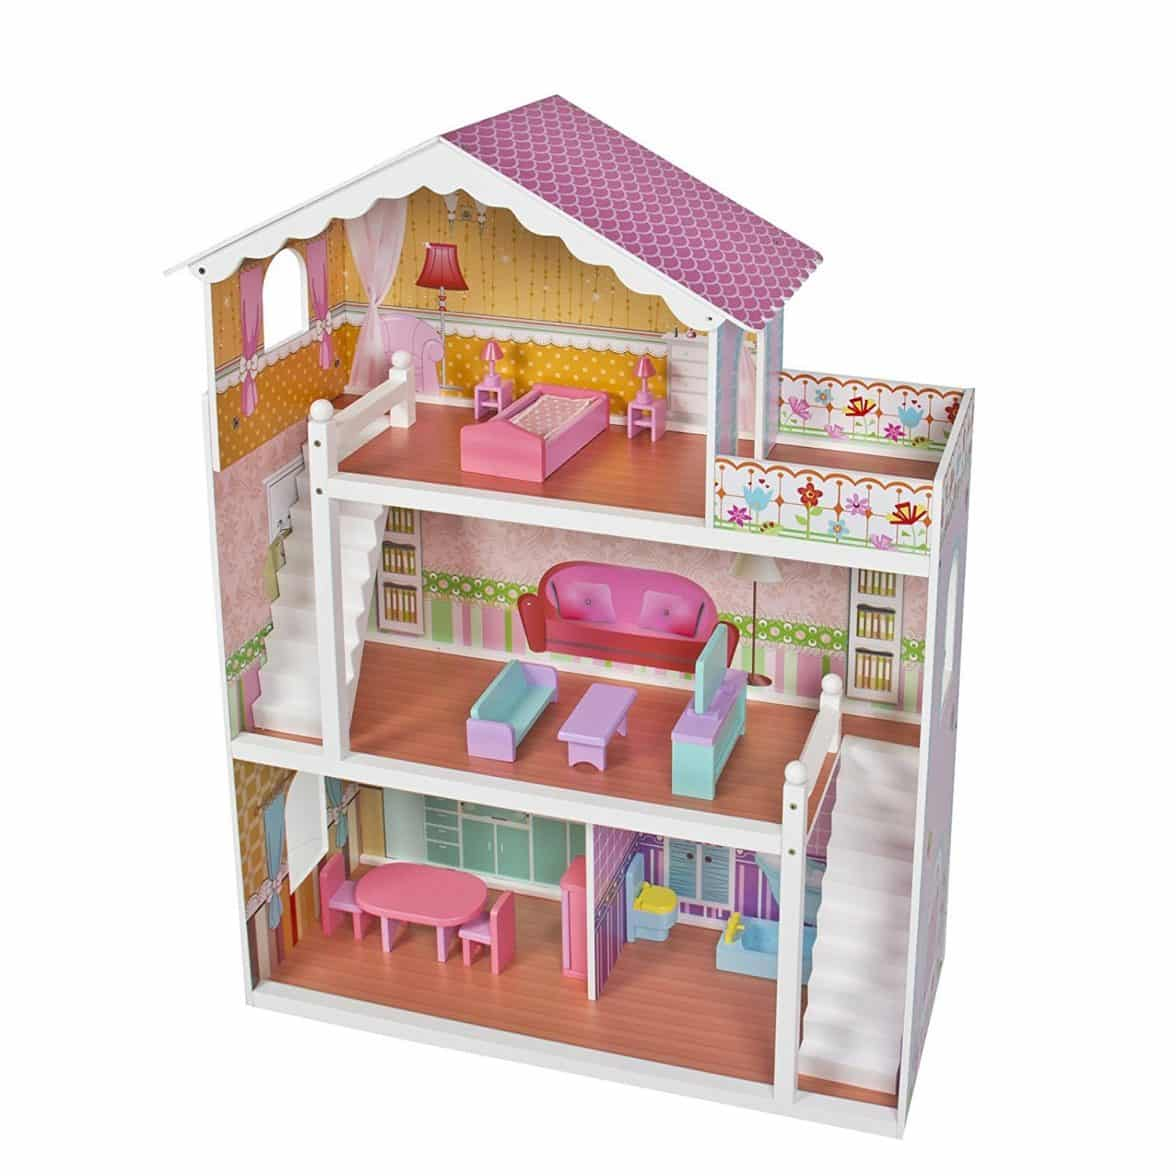 Large Children S Wooden Dollhouse Fits Barbie Doll House Pink With